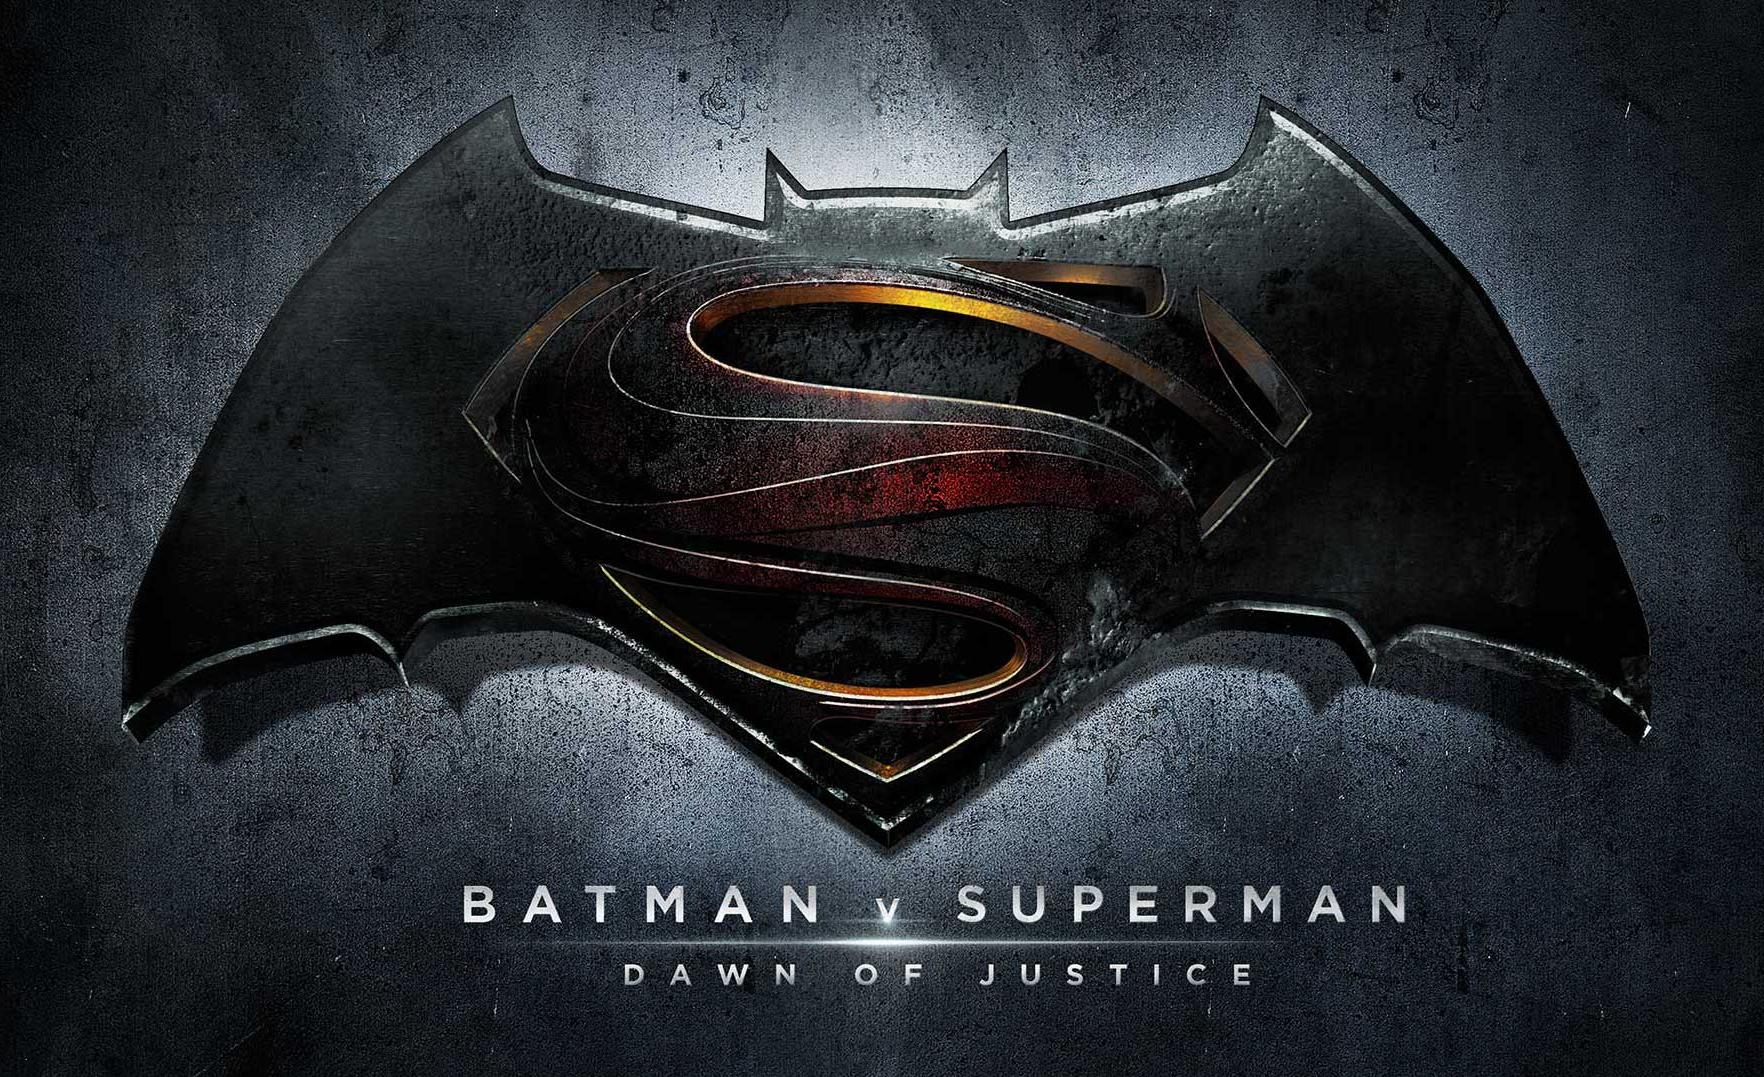 'Batman V. Superman' Might Not Be What Warner Bros. Is Expecting